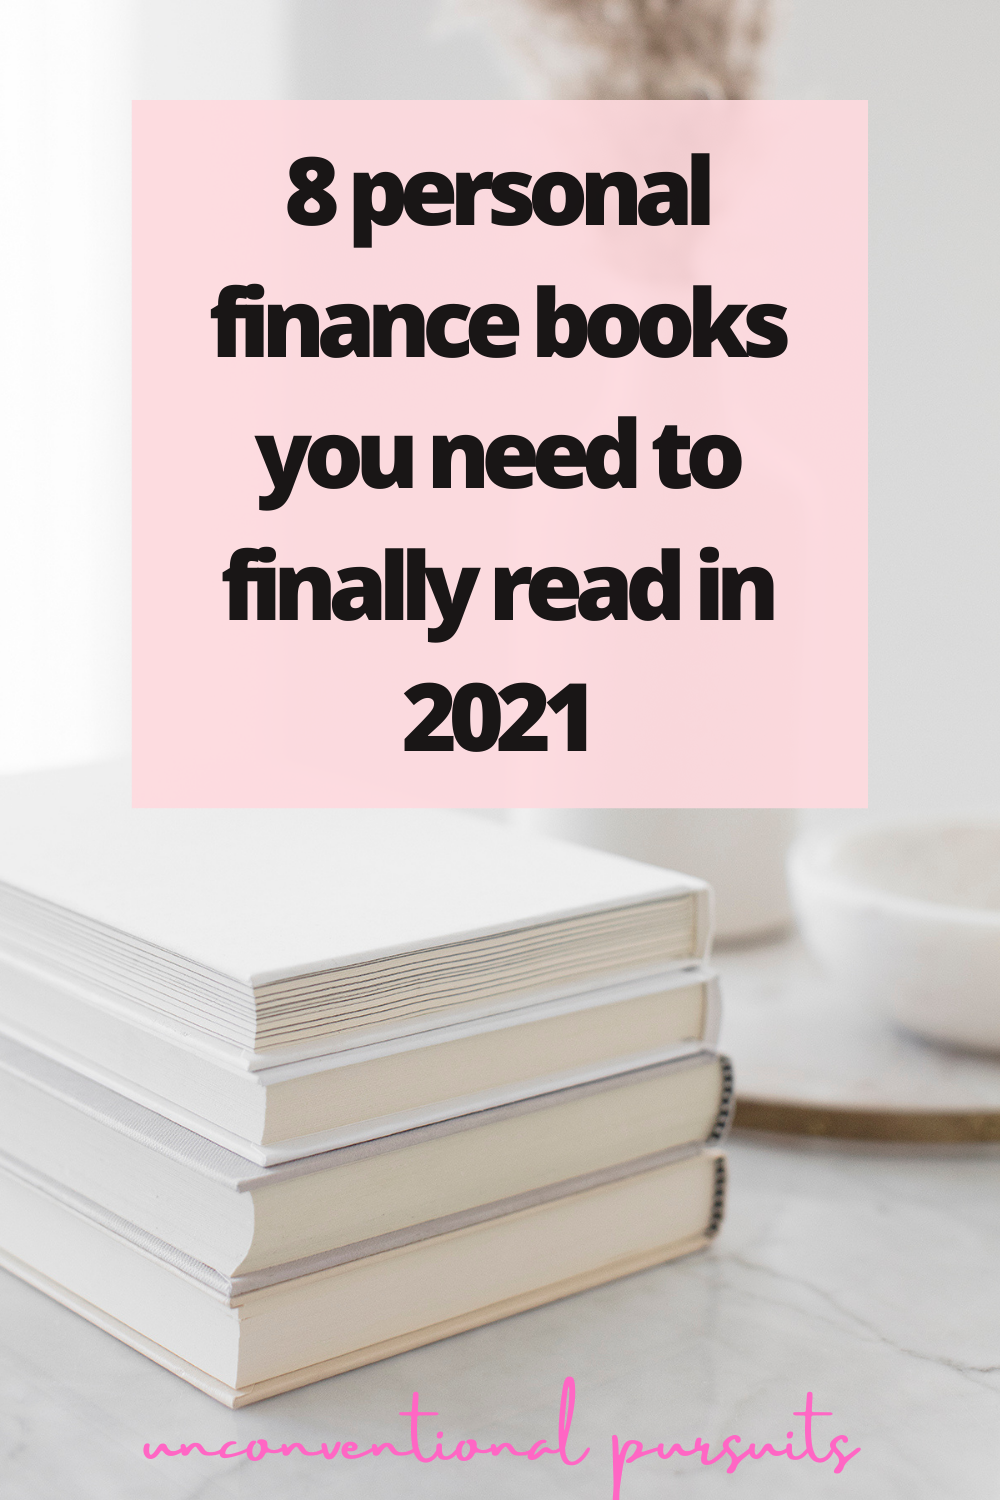 The Unconventional Pursuits Blog | 8 Personal Finance Books Every Millenninal Investor Needs To Read In 2020. #millennialinvestor #personalfinancebooks